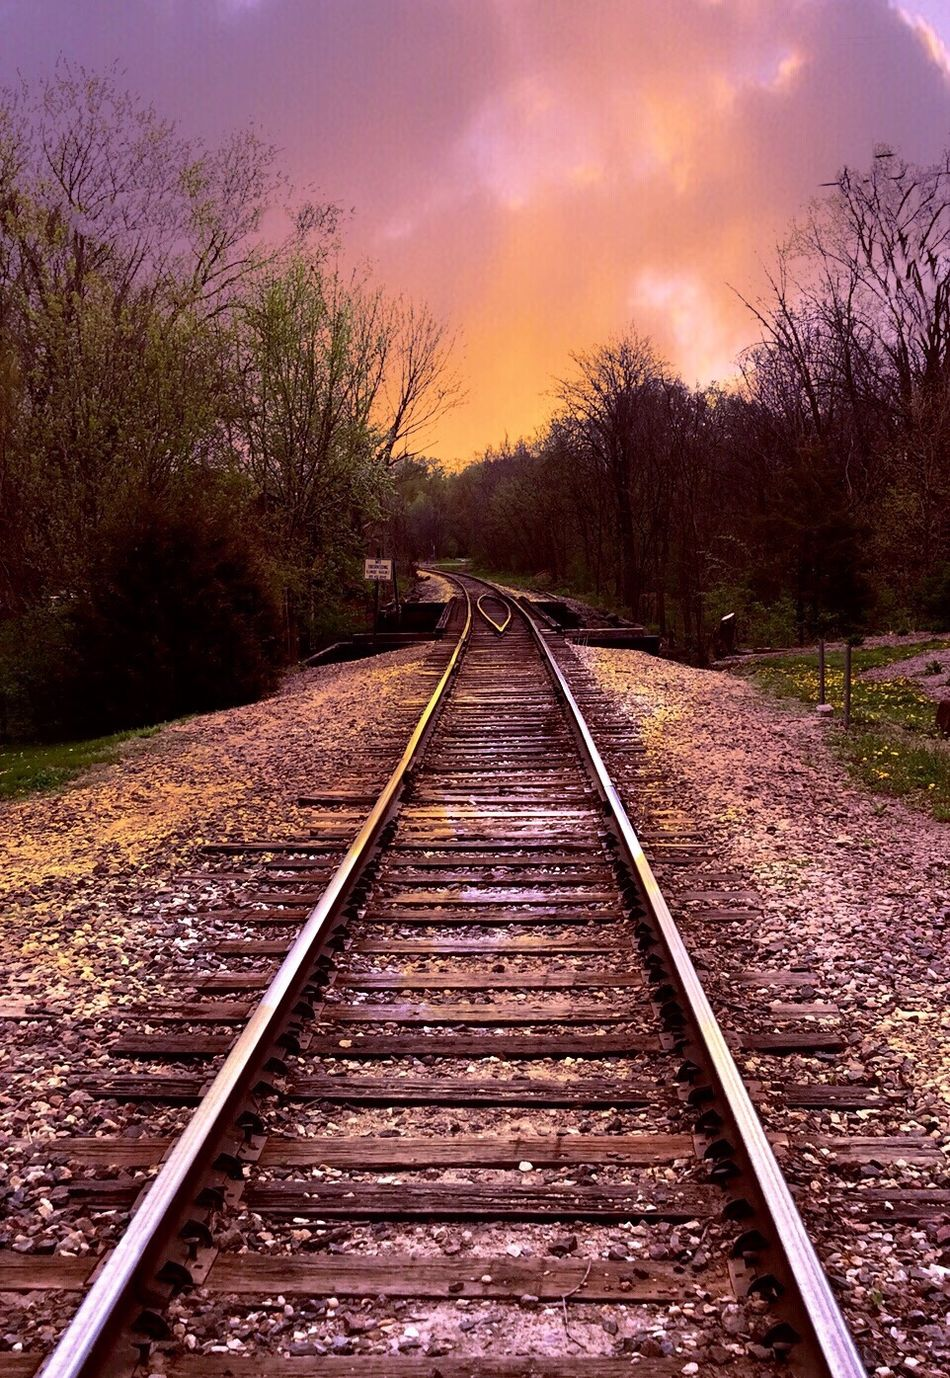 Rail Road Tracks Hello World Taking Photos Springtime Pink And Orange Pink And Orange Sky Clouds And Sky Looking Ahead 43 Golden Moments Feel The Journey Colour Of Life Traveling Home For The Holidays Oswego, IL The Secret Spaces The Long Goodbye